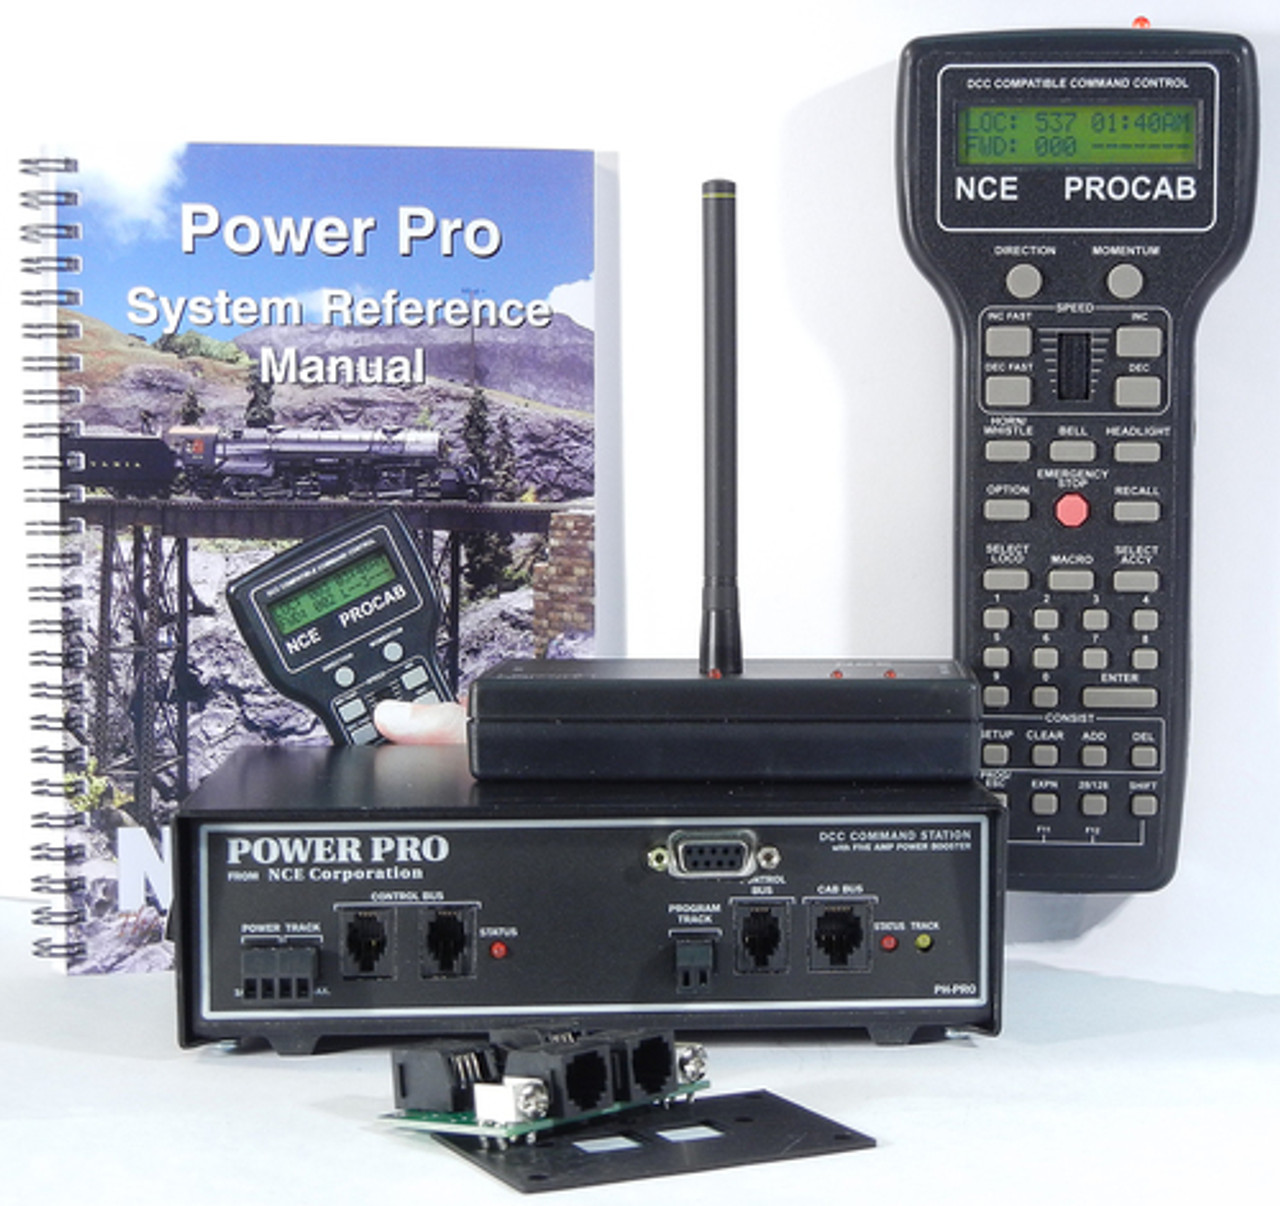 2 NCE /  PH-PRO-R Wireless Power Pro STARTER S (SCALE=ALL) Part # = 524-2